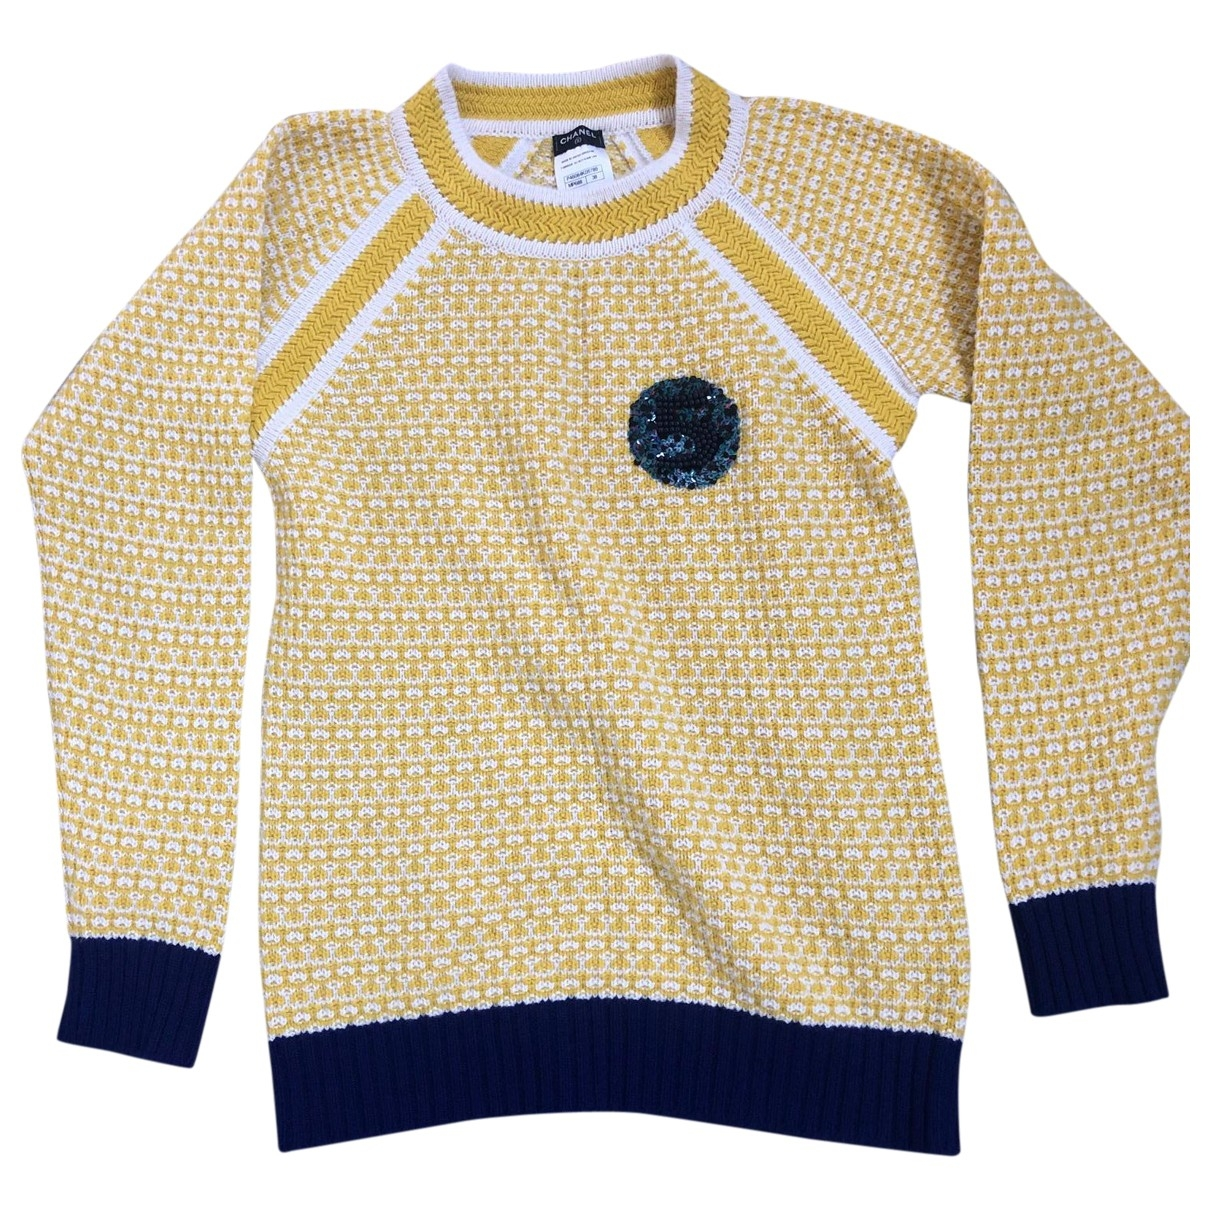 Chanel N Yellow Cashmere Knitwear for Women 38 FR